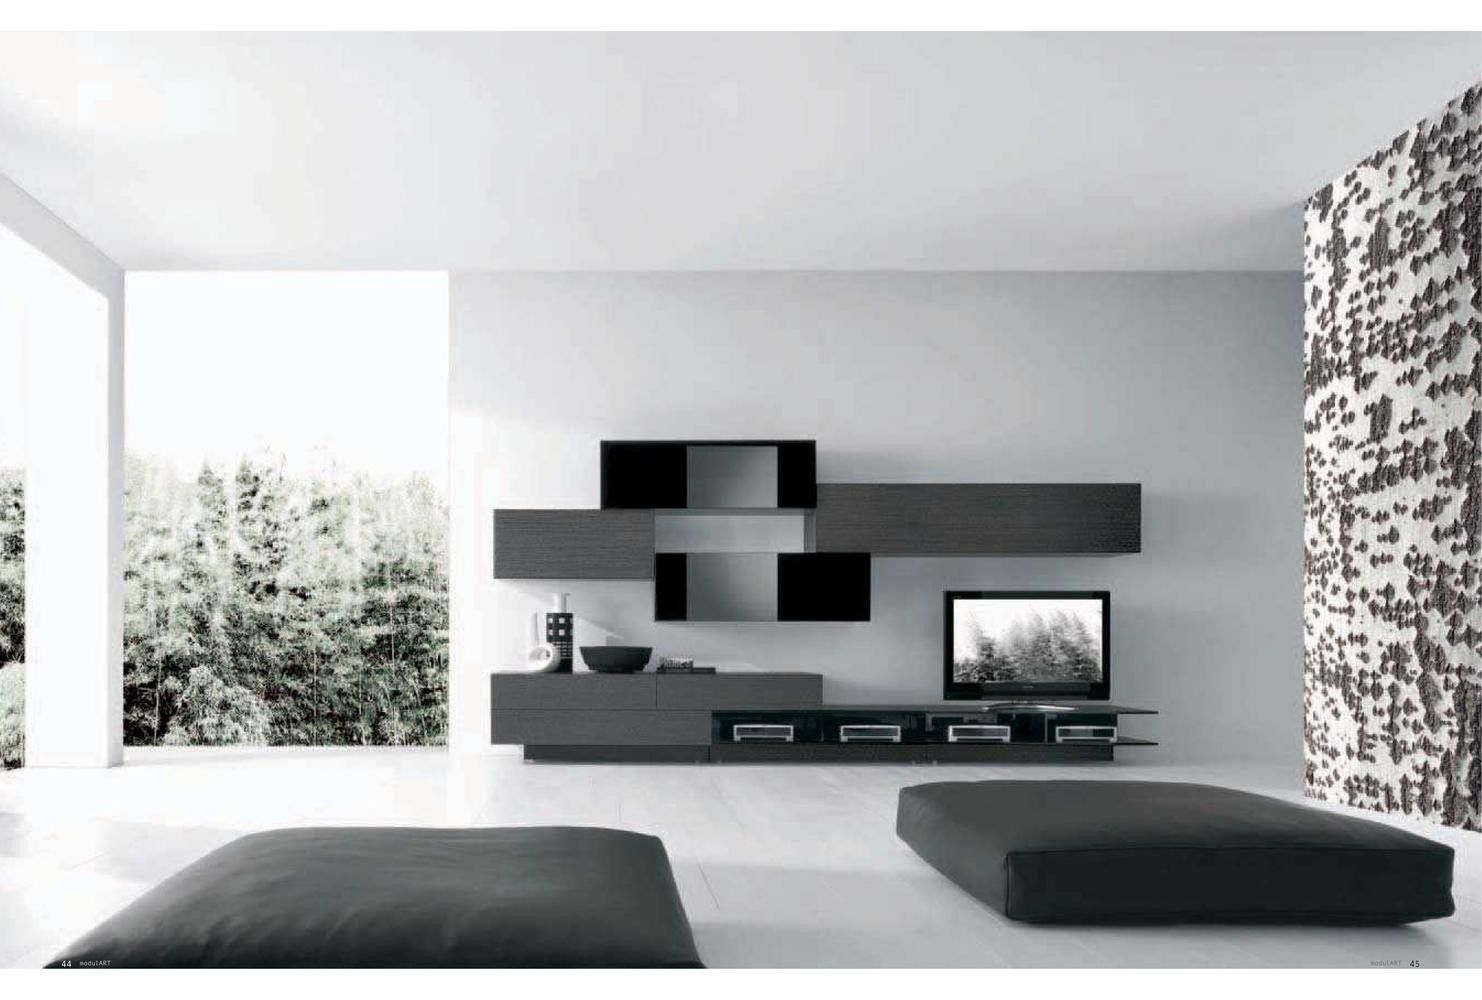 Design Wall Units For Living Room living room wall unit system designs living room wall unit Best Collection Of Modern Living Room Wall Unit Ideas Modern Italian Style Black Tv Wall Unit With Rectangular Storage In Black And White